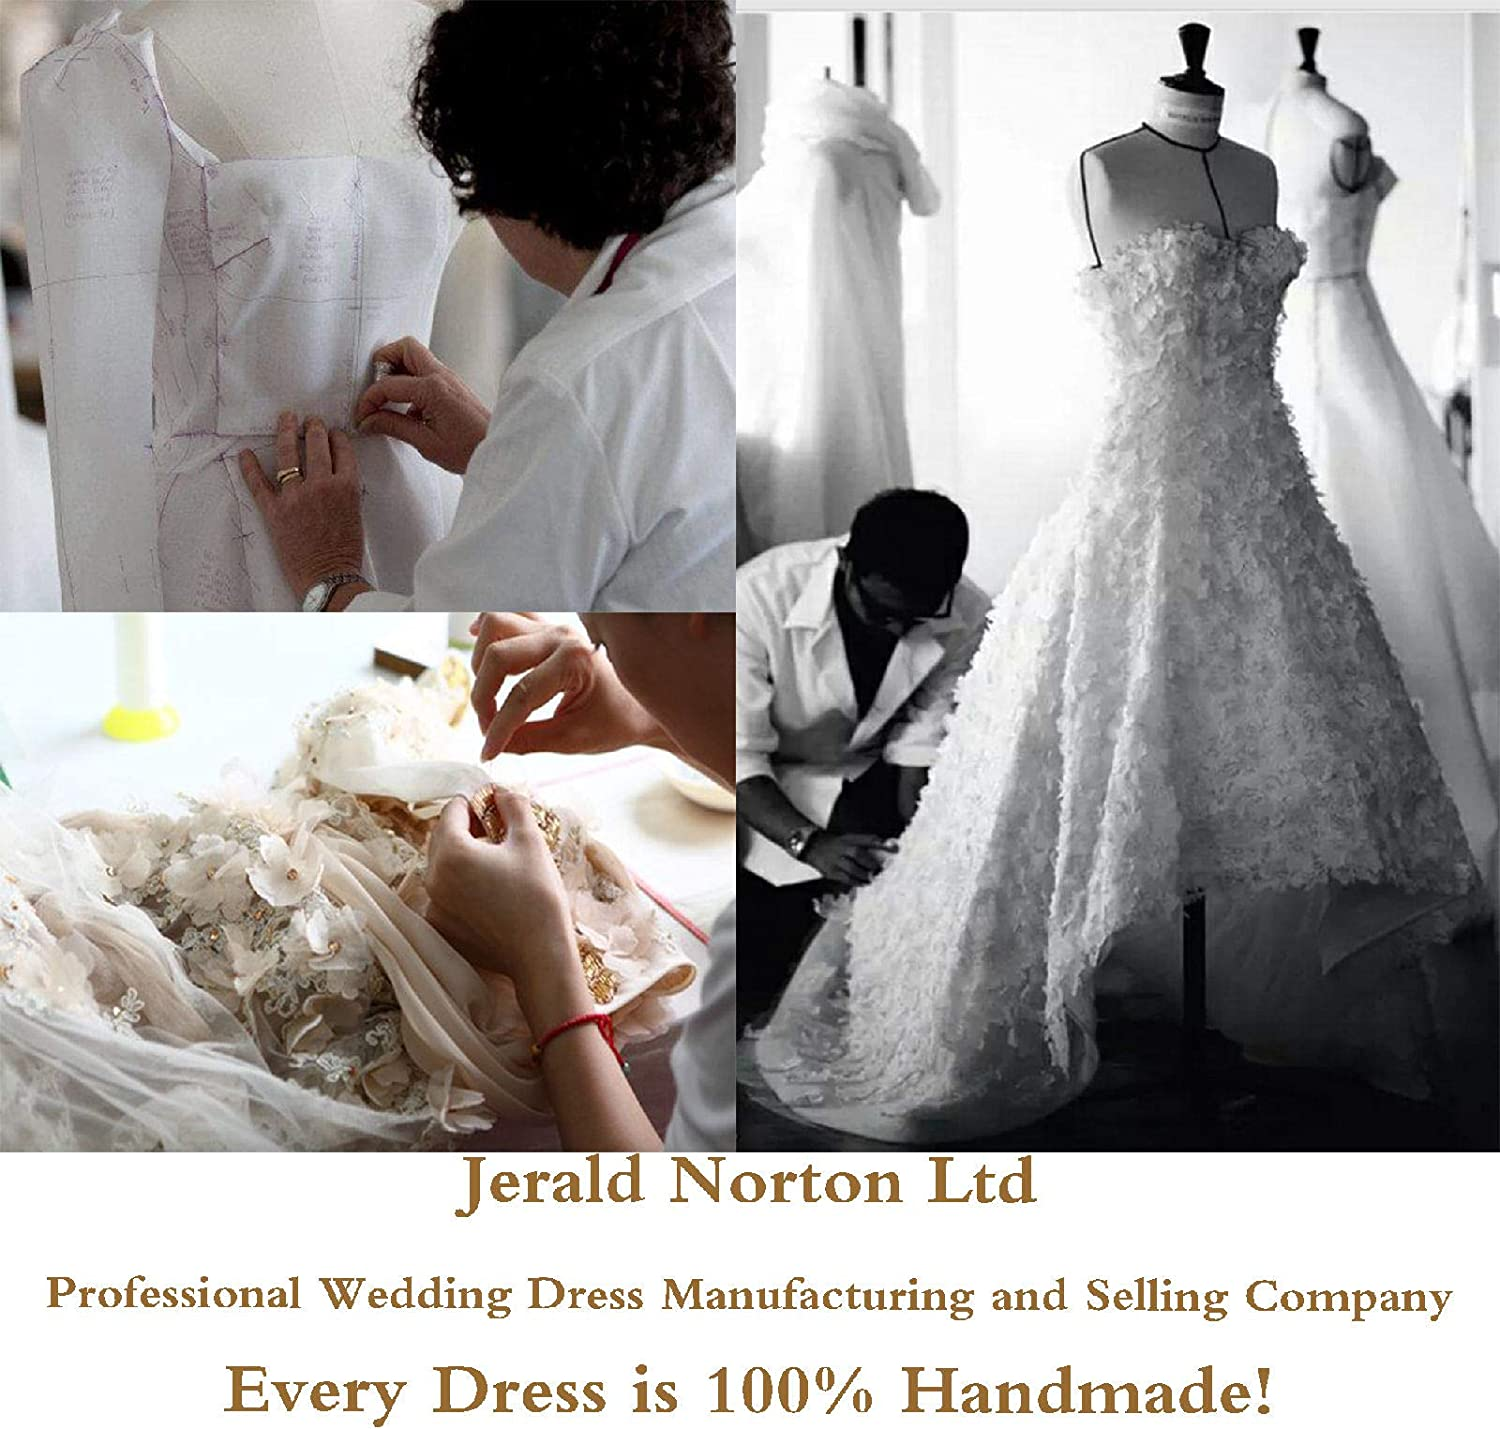 Jerald Norton Ltd Womens Floral Lace Cap Sleeves Illusion Sheath Gown with Crystal Sash